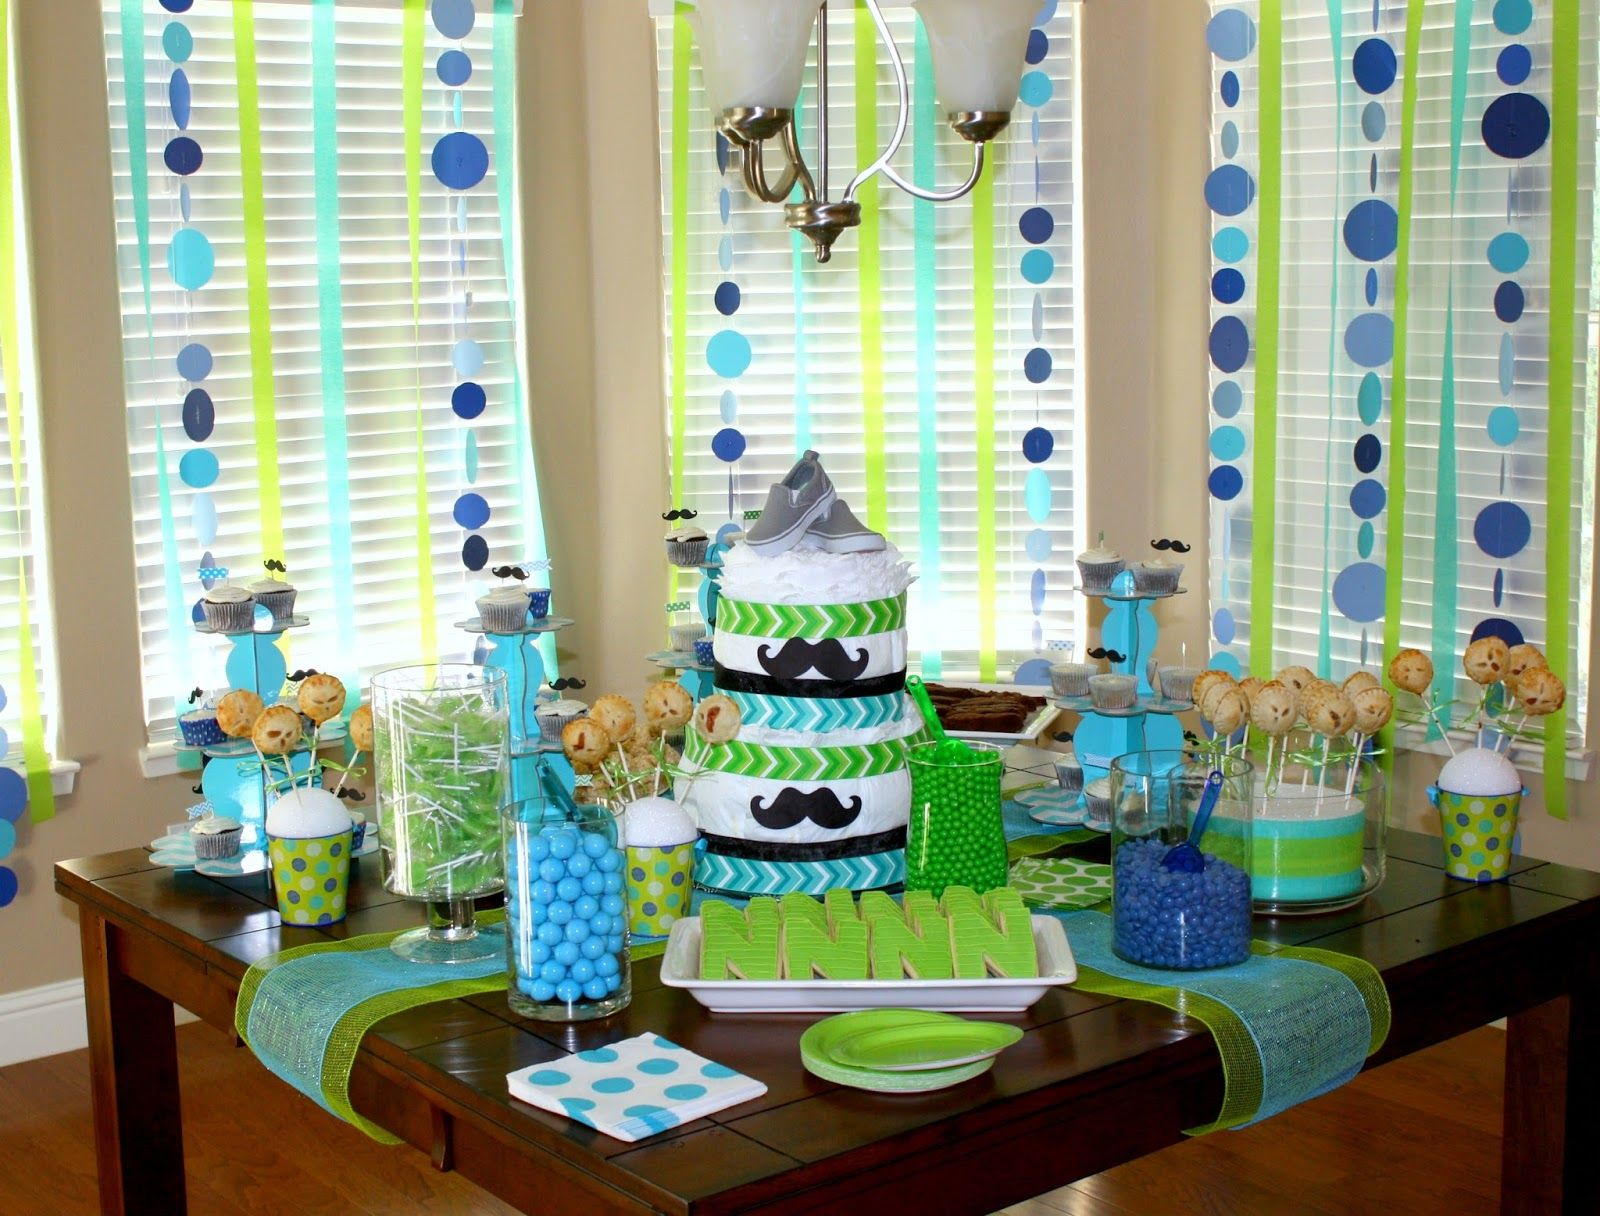 Slightly overdone but some cute ideas for a baby shower